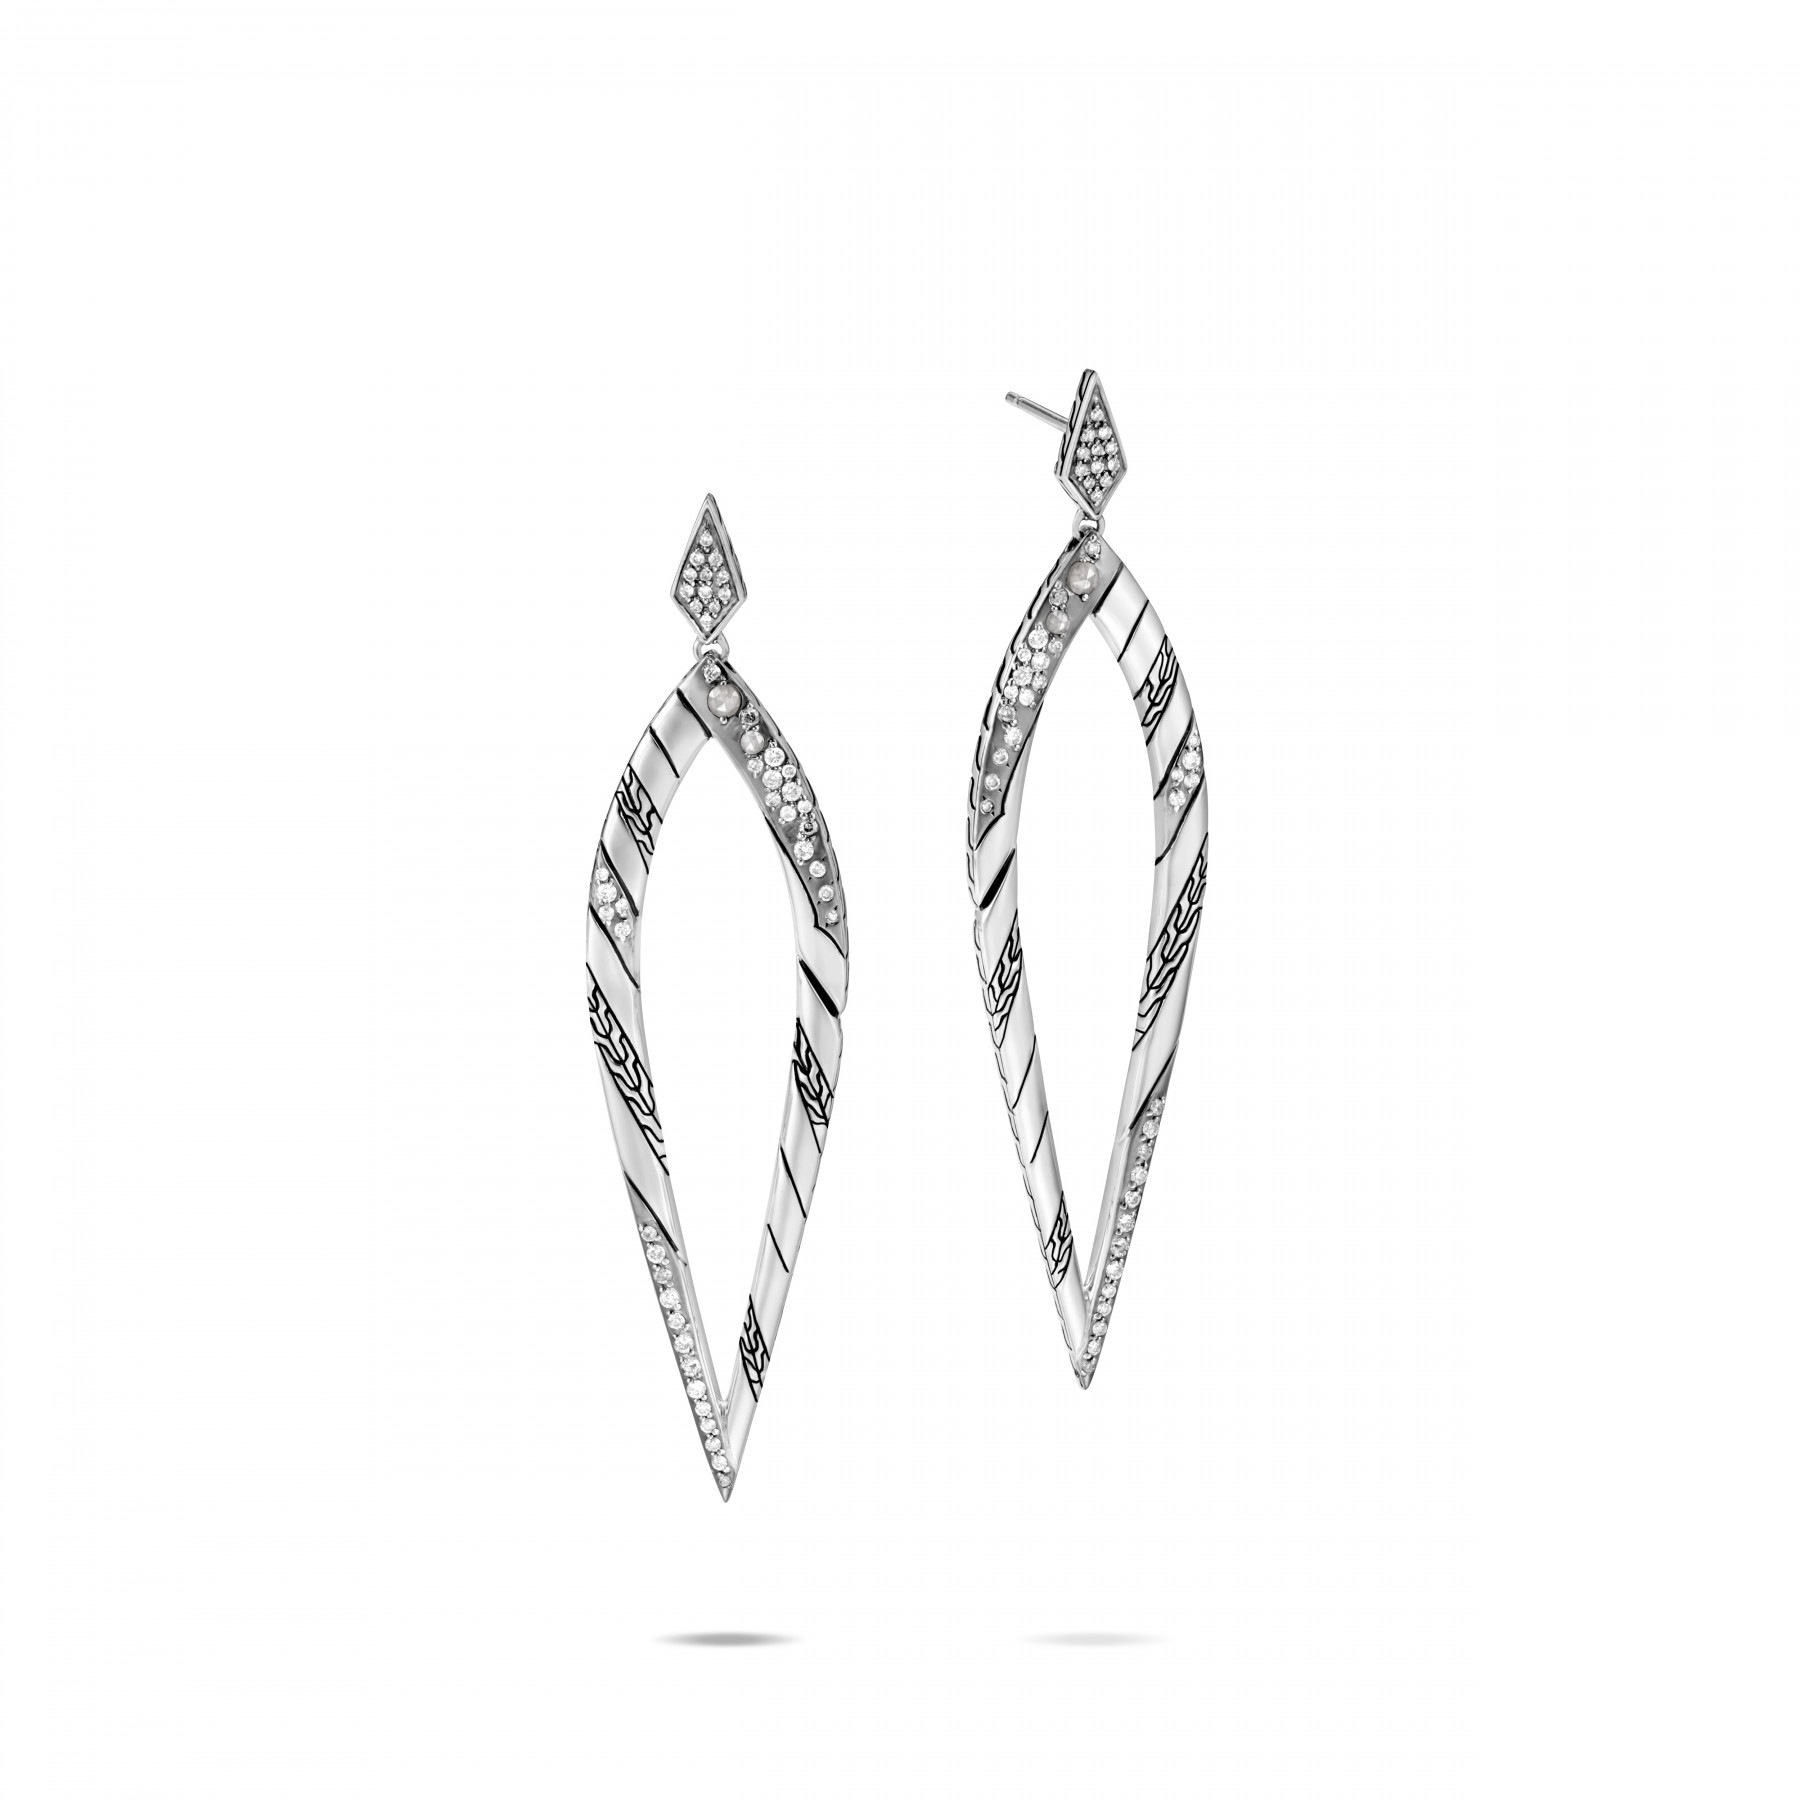 John Hardy Lahar White and Grey Diamond Spear Drop Earrings front view